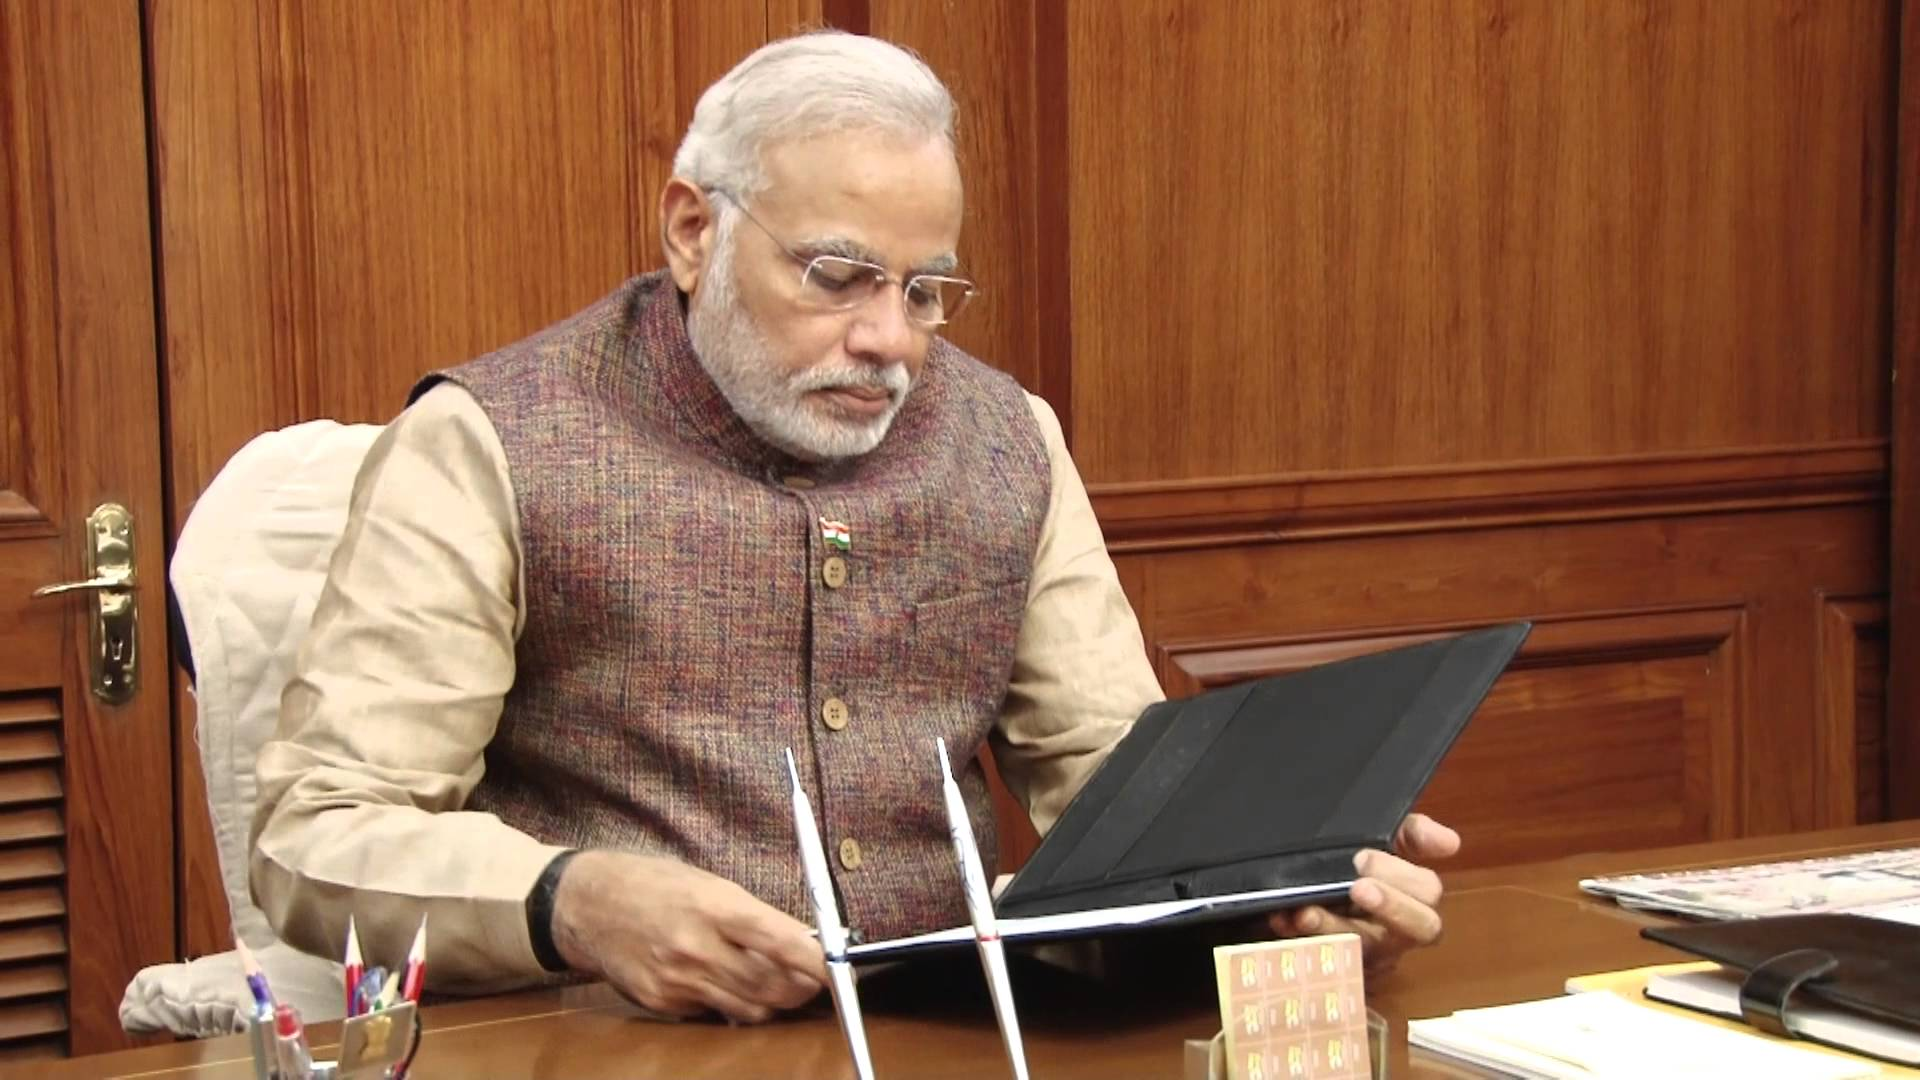 Years Later, PM Modi's Popularity Continues To Soar